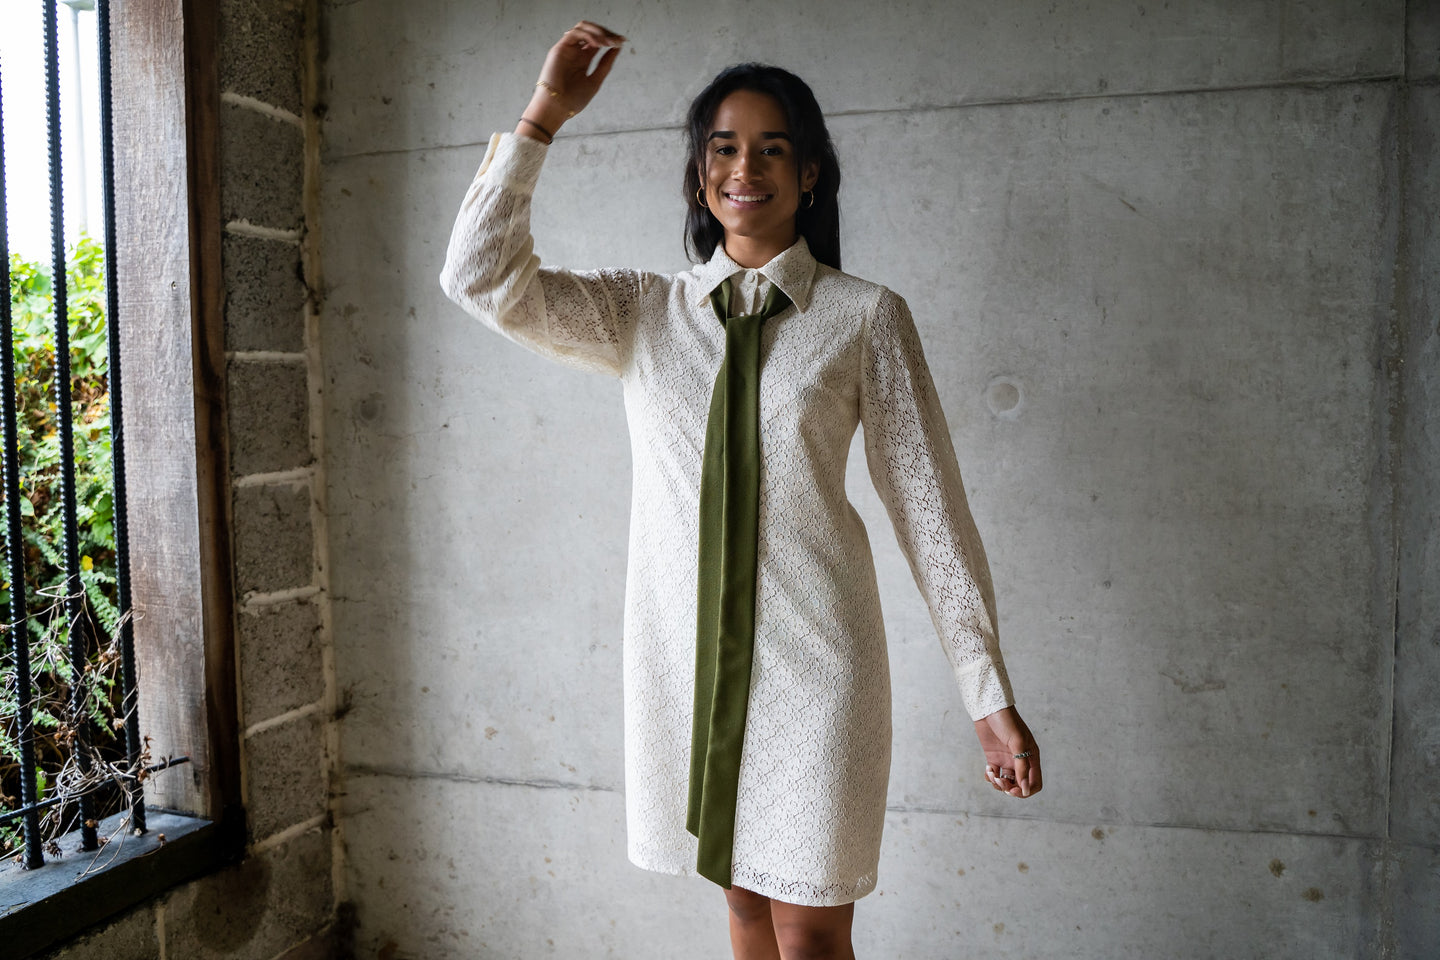 Cotton lace shirt dress by slow fashion brand Atelier MorganMarsh